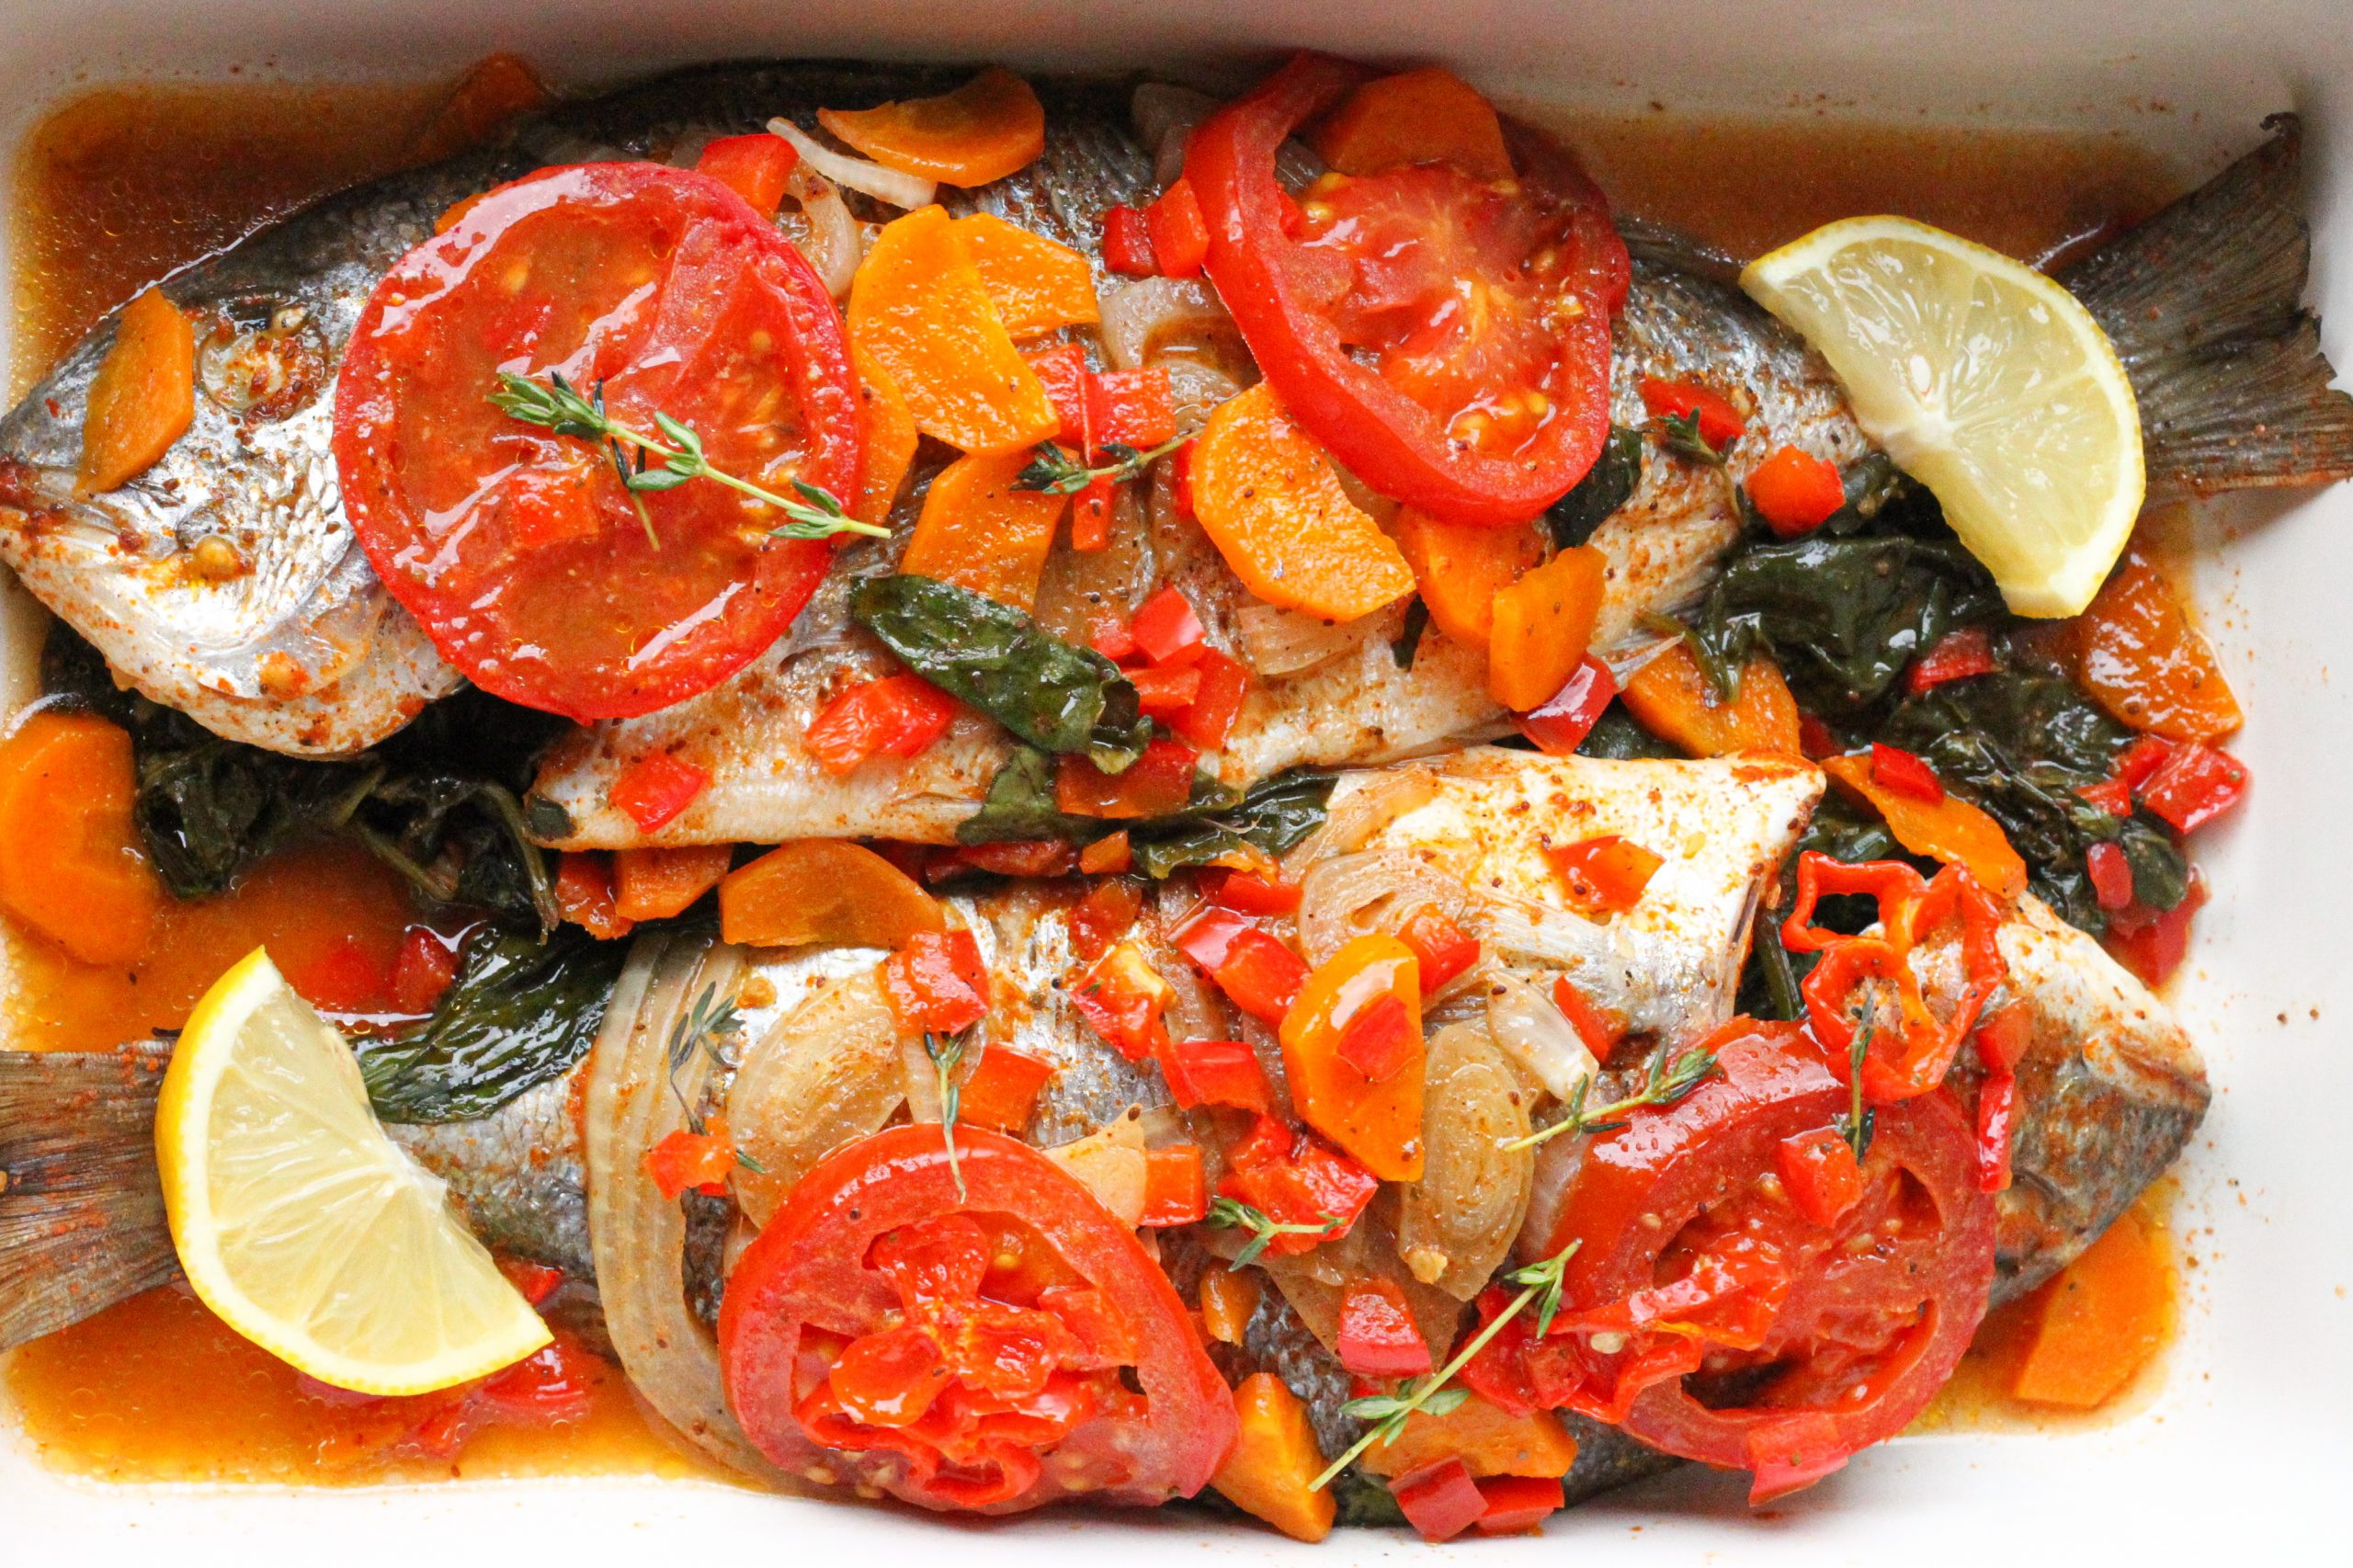 Baked stuffed Sea bream